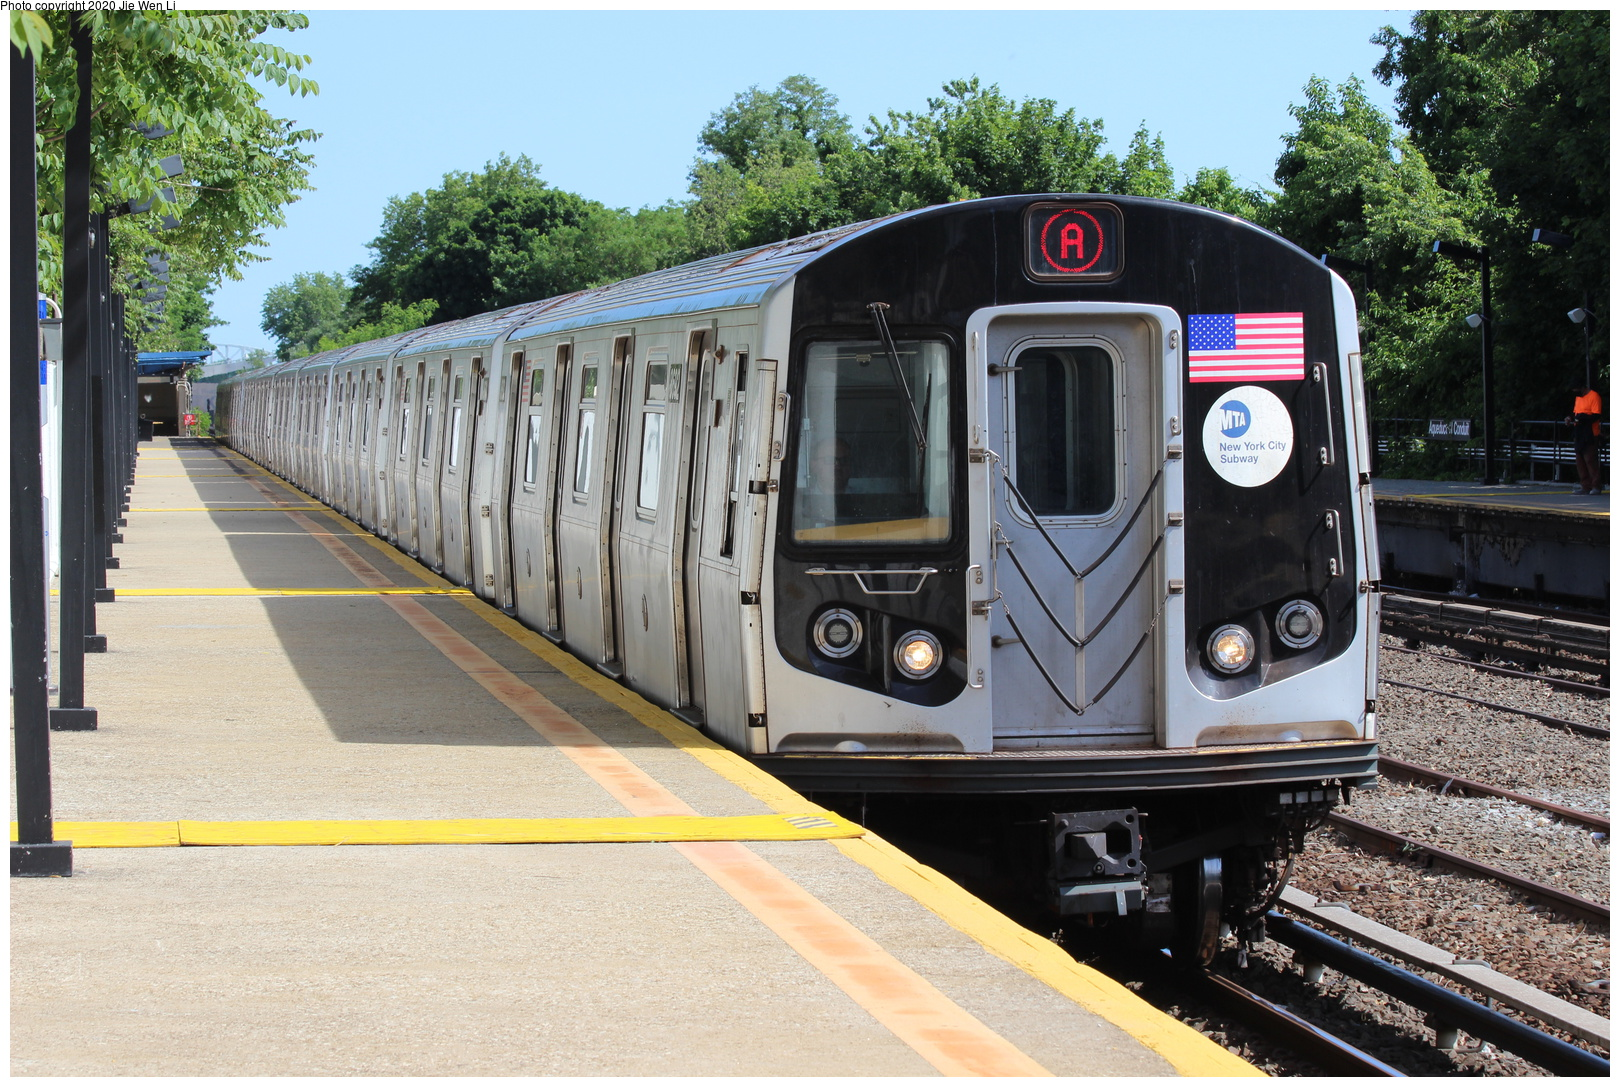 (261k, 1044x1037)<br><b>Country:</b> United States<br><b>City:</b> New York<br><b>System:</b> New York City Transit<br><b>Line:</b> BMT Canarsie Line<br><b>Location:</b> Broadway Junction <br><b>Car:</b> BMT Multi  <br><b>Photo by:</b> Joel Shanus<br><b>Notes:</b> Lefferts (Fulton line) train at Bway Jct.<br><b>Viewed (this week/total):</b> 9 / 1291